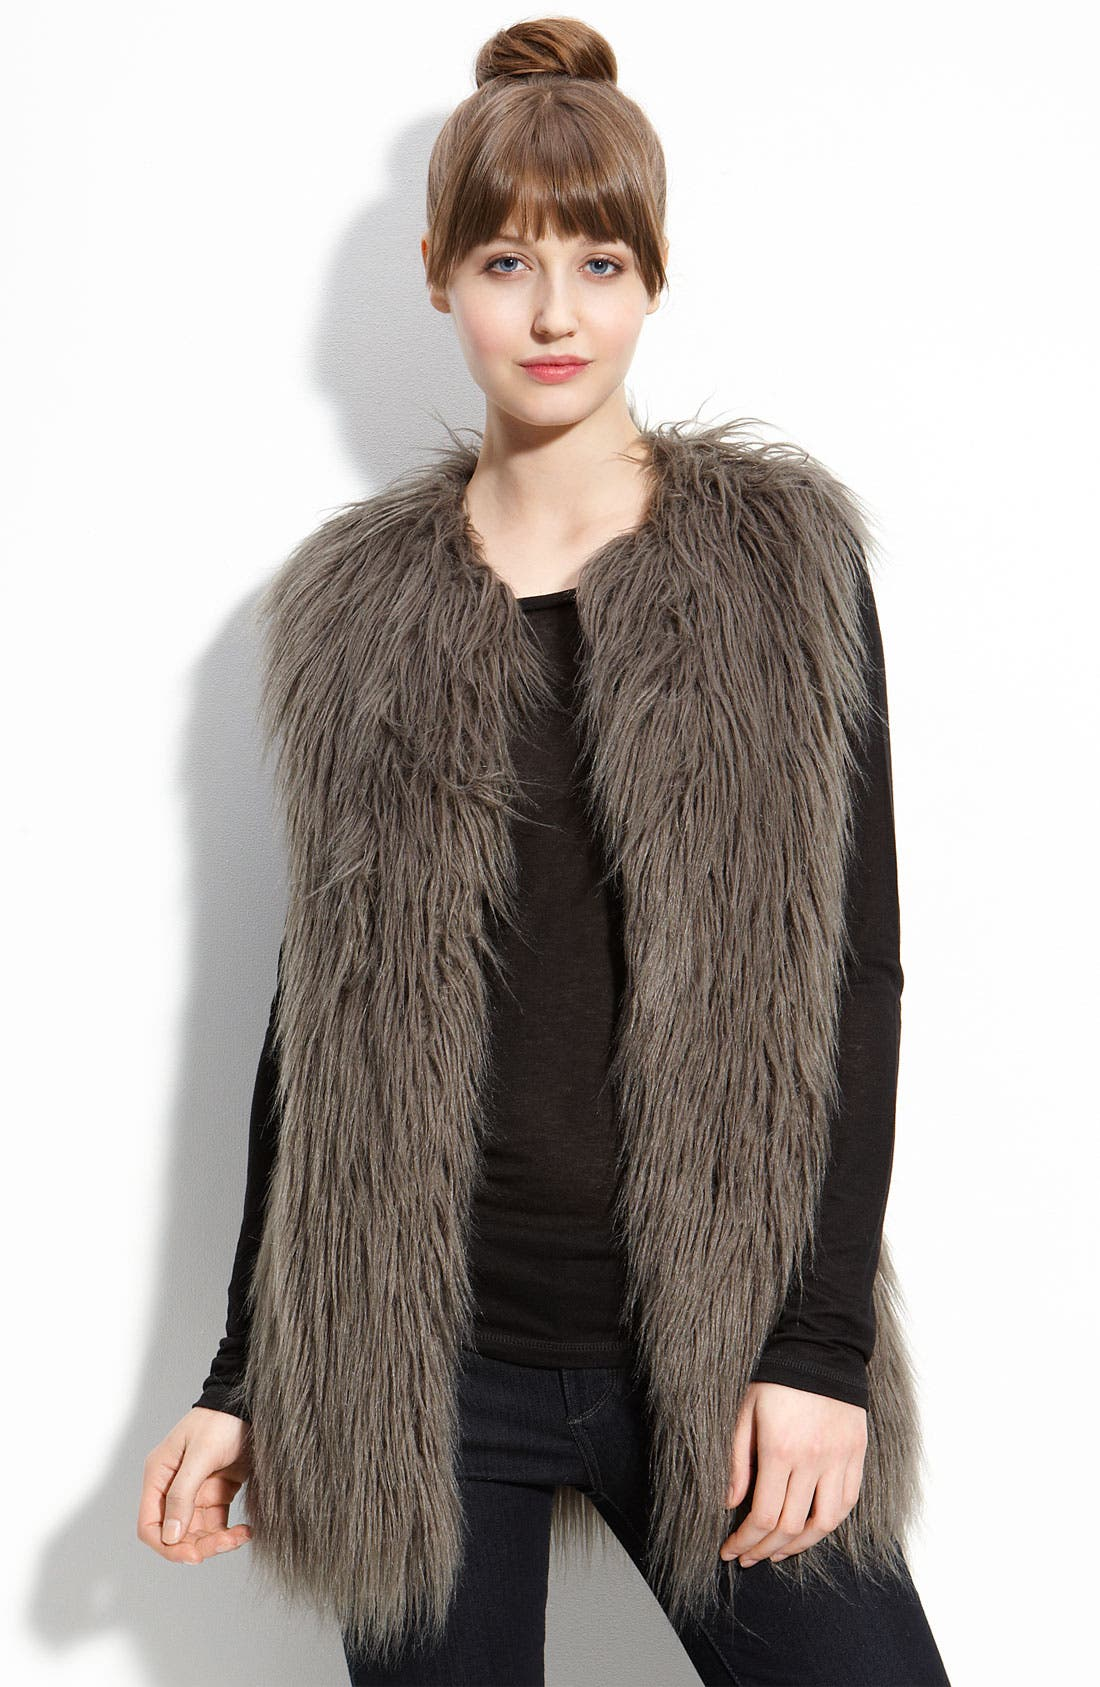 Alternate Image 1 Selected - Hawke & Co. Faux Fur Vest (Nordstrom Exclusive)